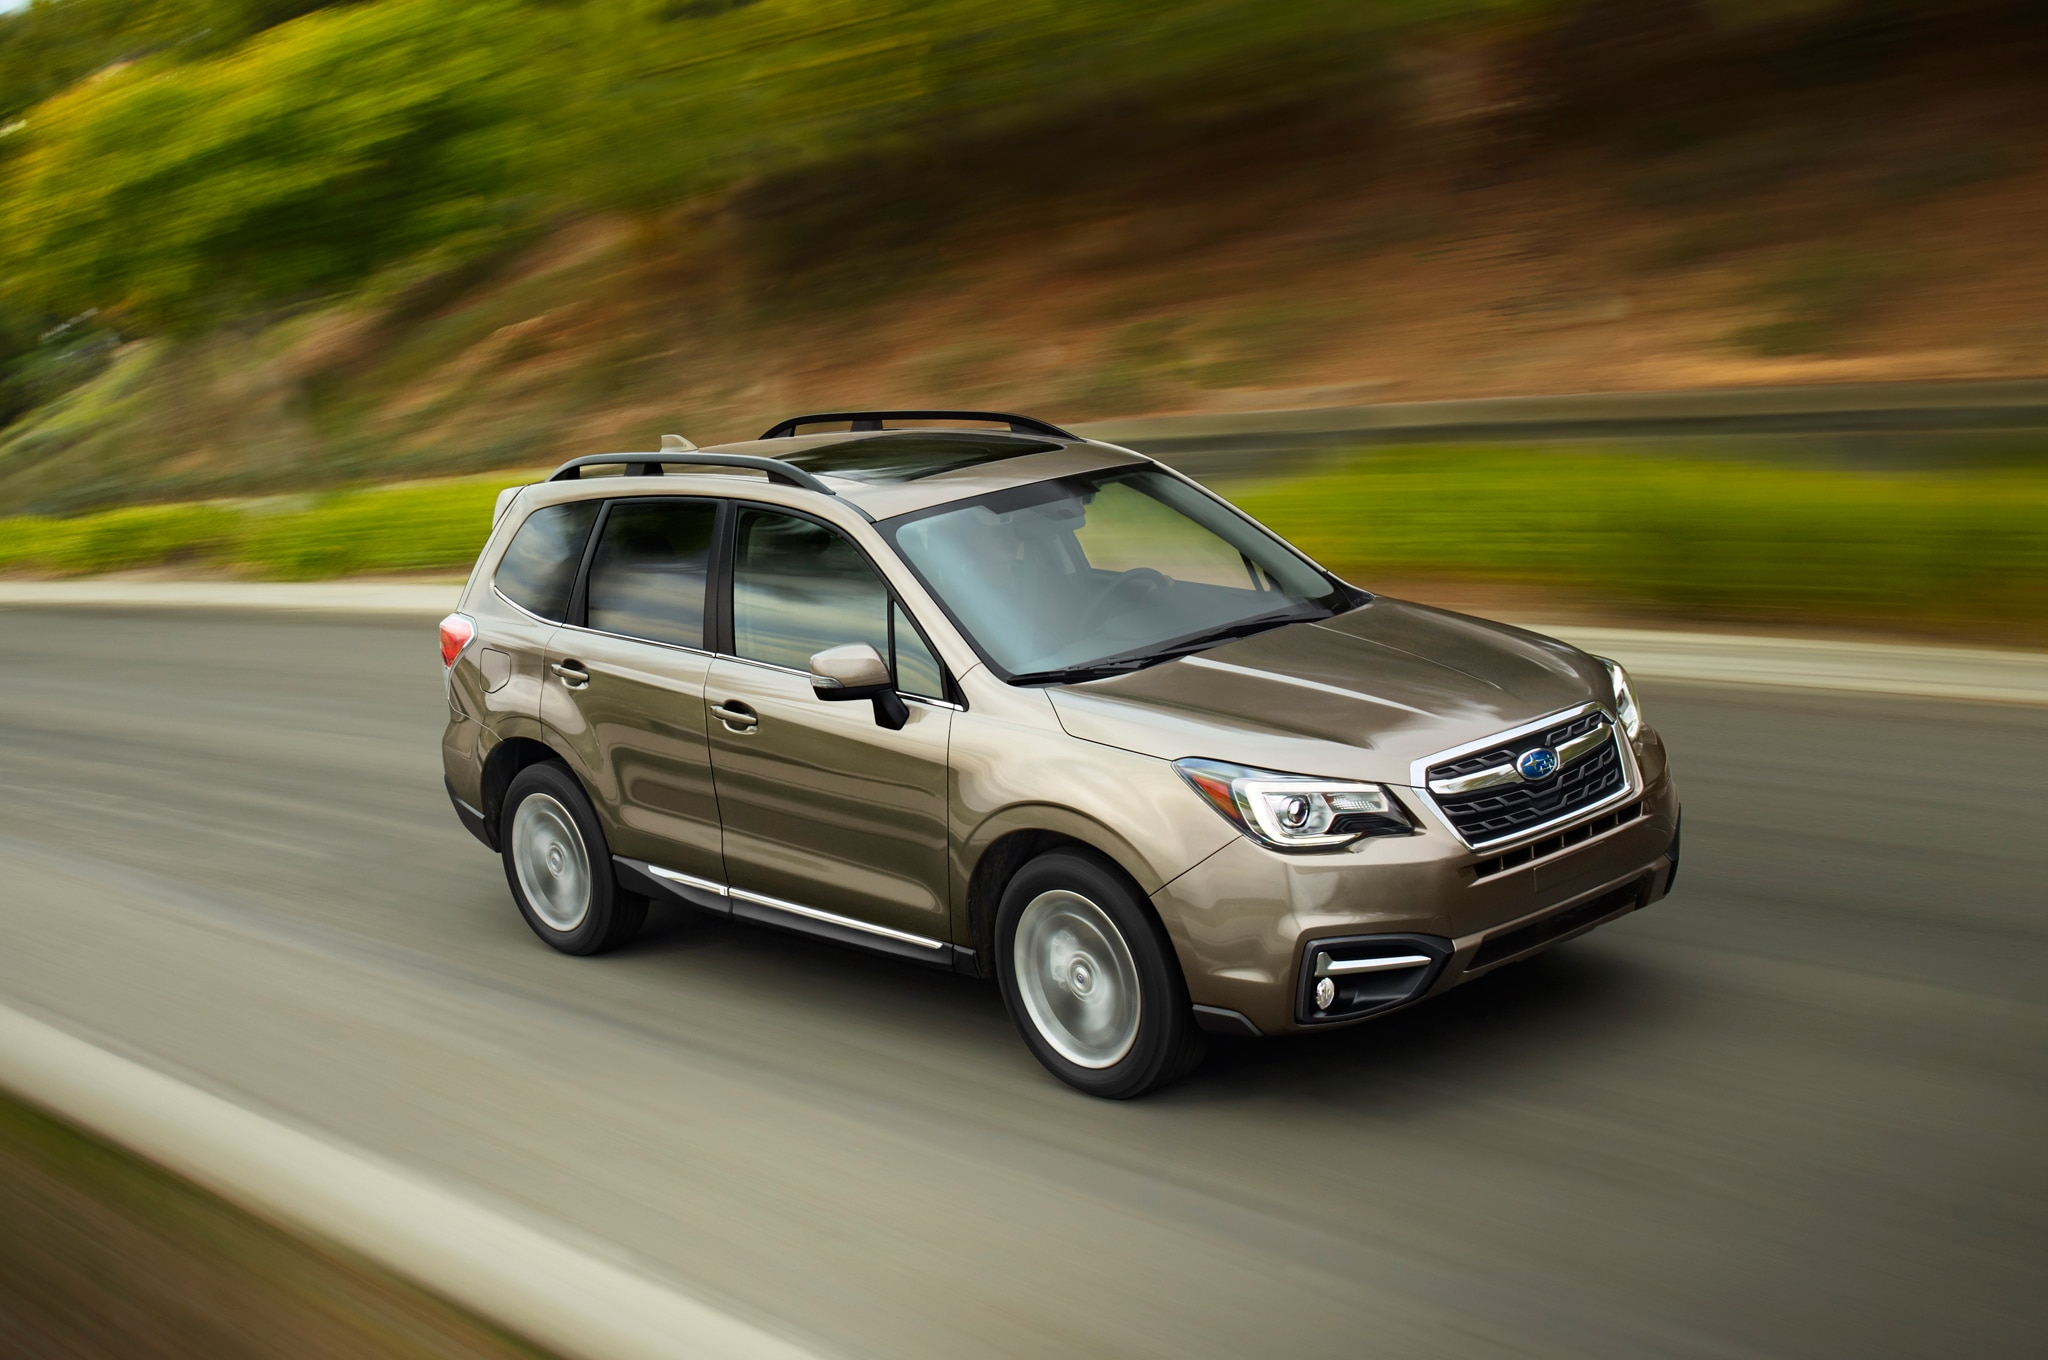 2017 Subaru Forester Priced From $23,470 | Automobile Magazine